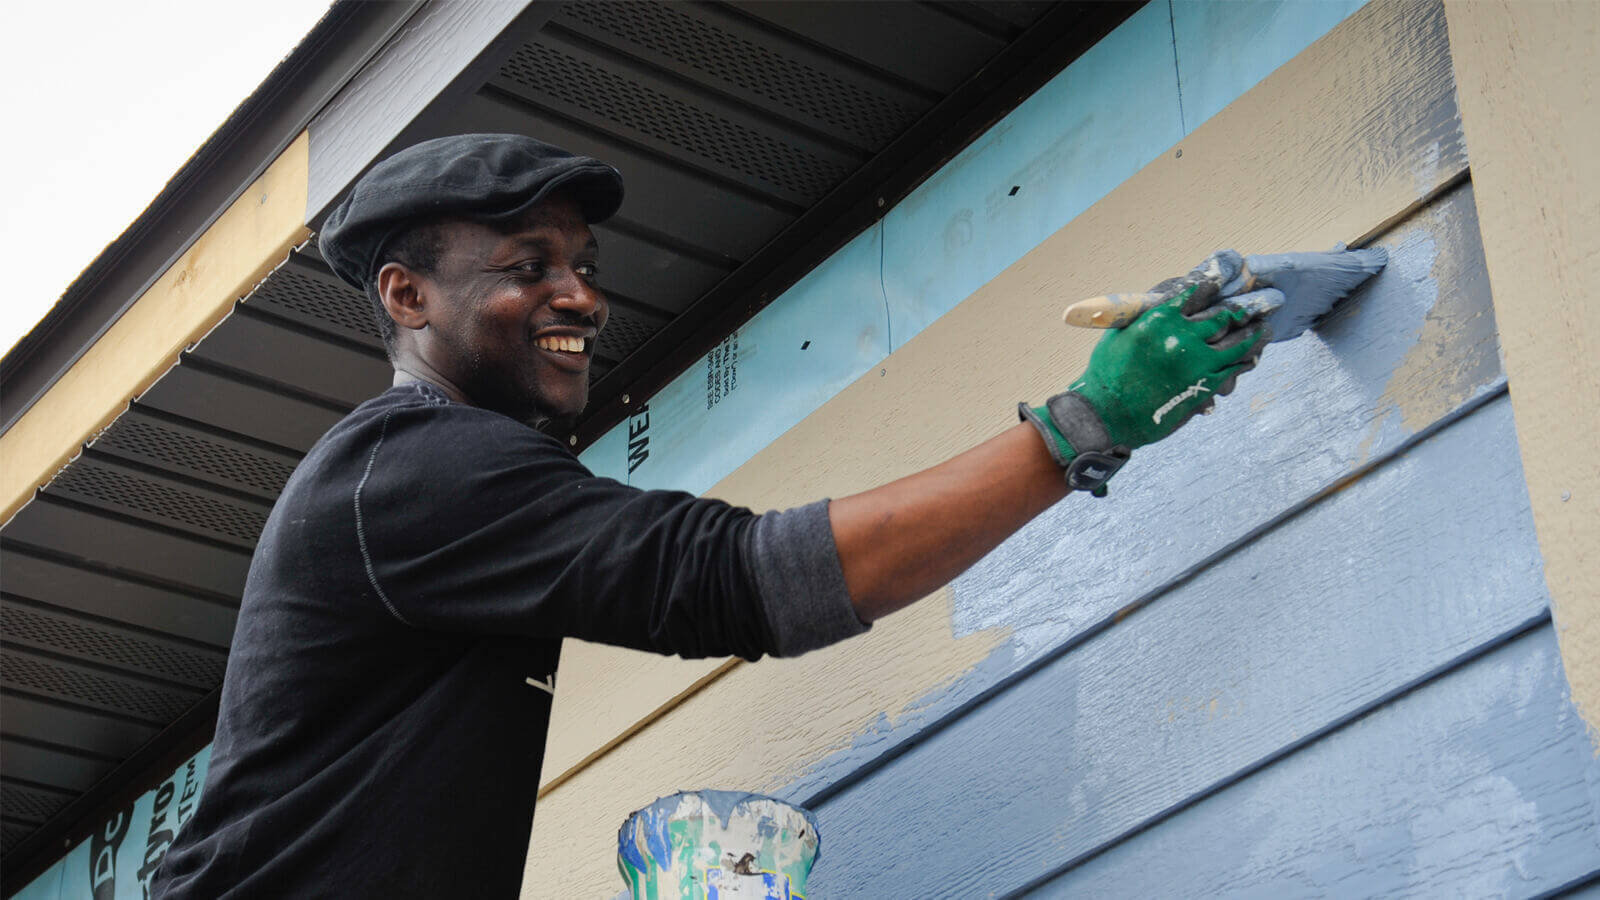 A man smiling as he brushes light blue paint on a tan house, just below the roof. He wears a black long-sleeved shirt, a black hat, and green work gloves. There is a can of paint below his raised arm.